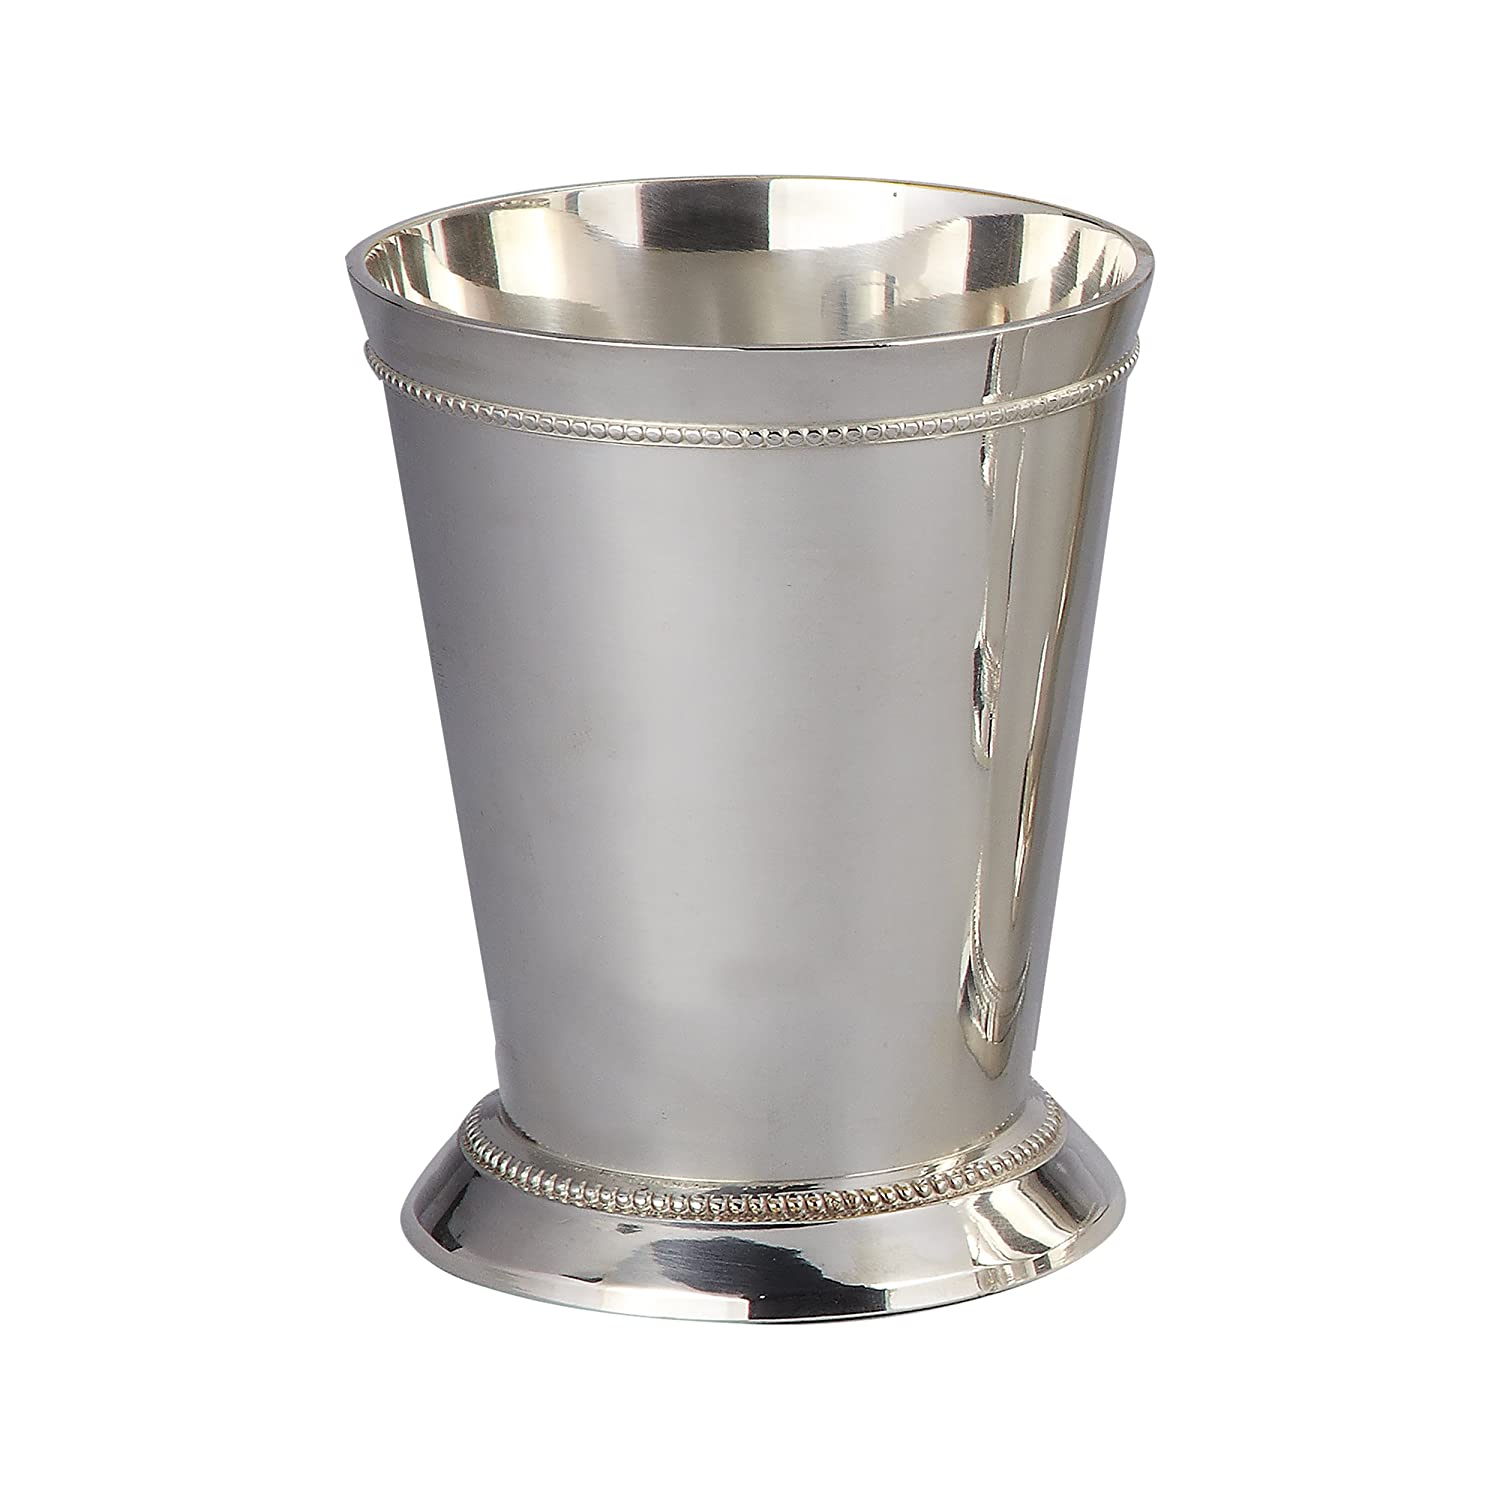 Elegance Silver 90372 Silver Plated Small Beaded Mint Julep Cup, 6 oz. 90372-ES